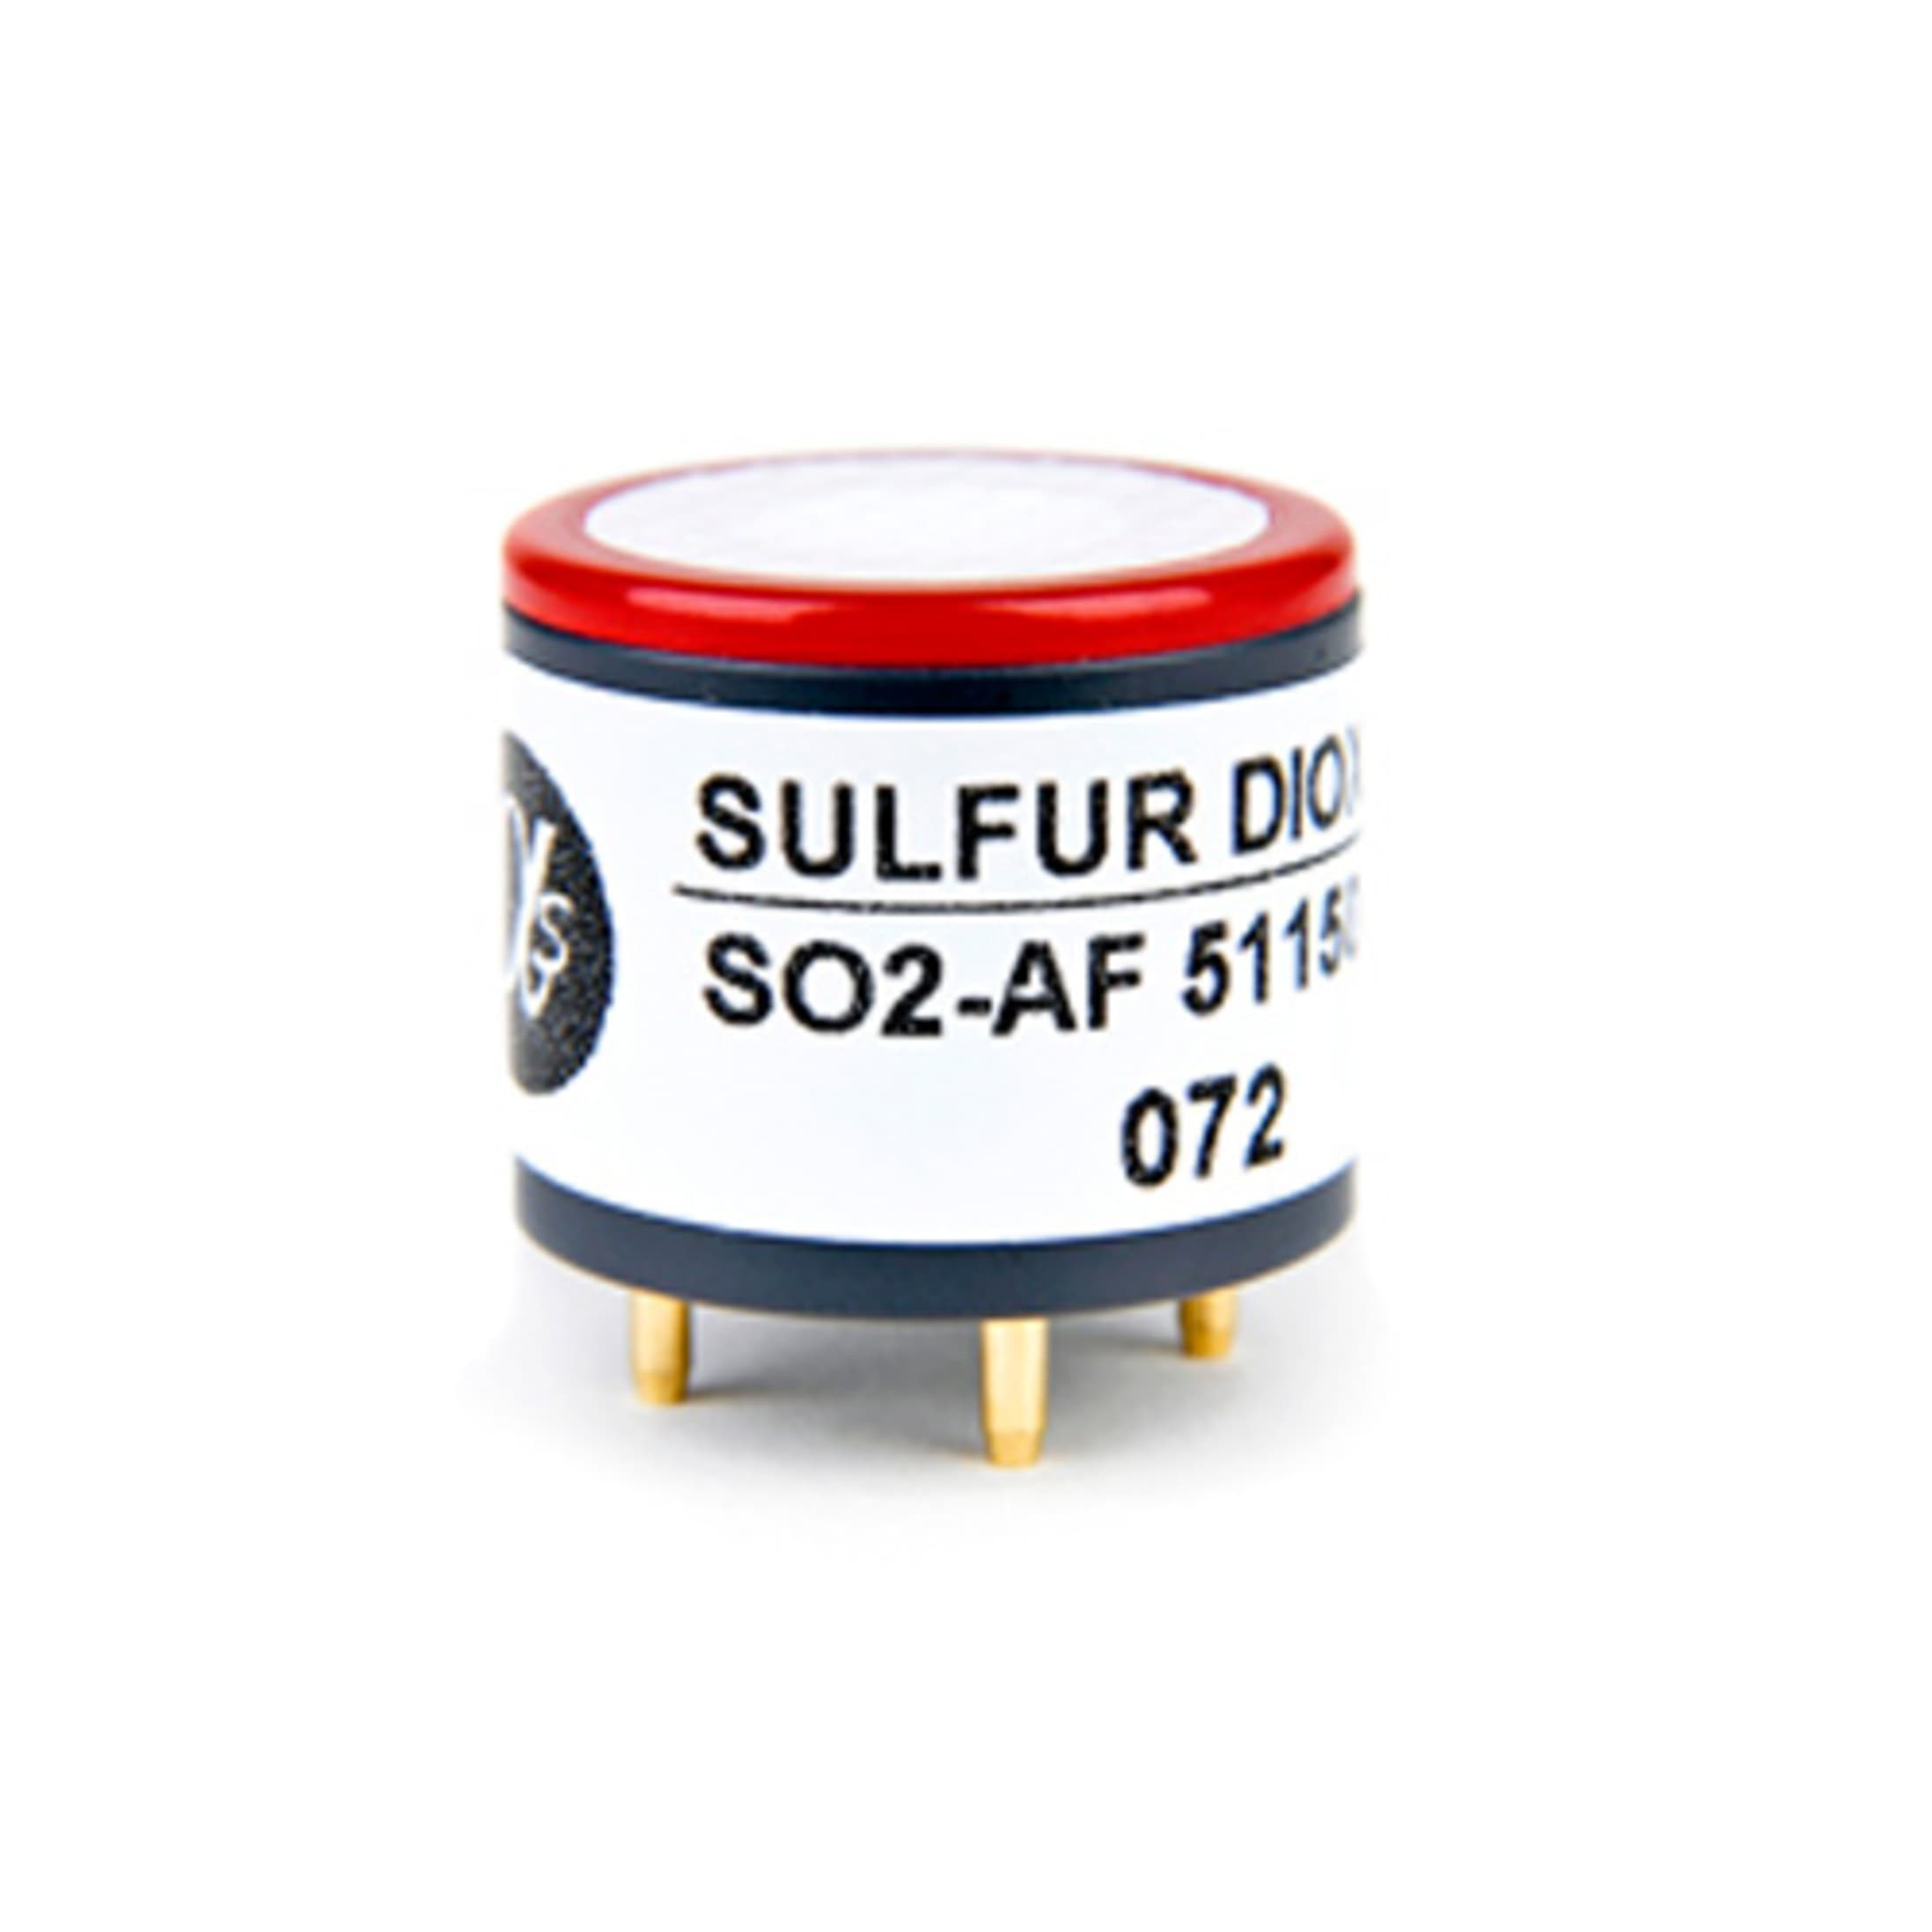 Sulfur Dioxide Sensor by Alphasense